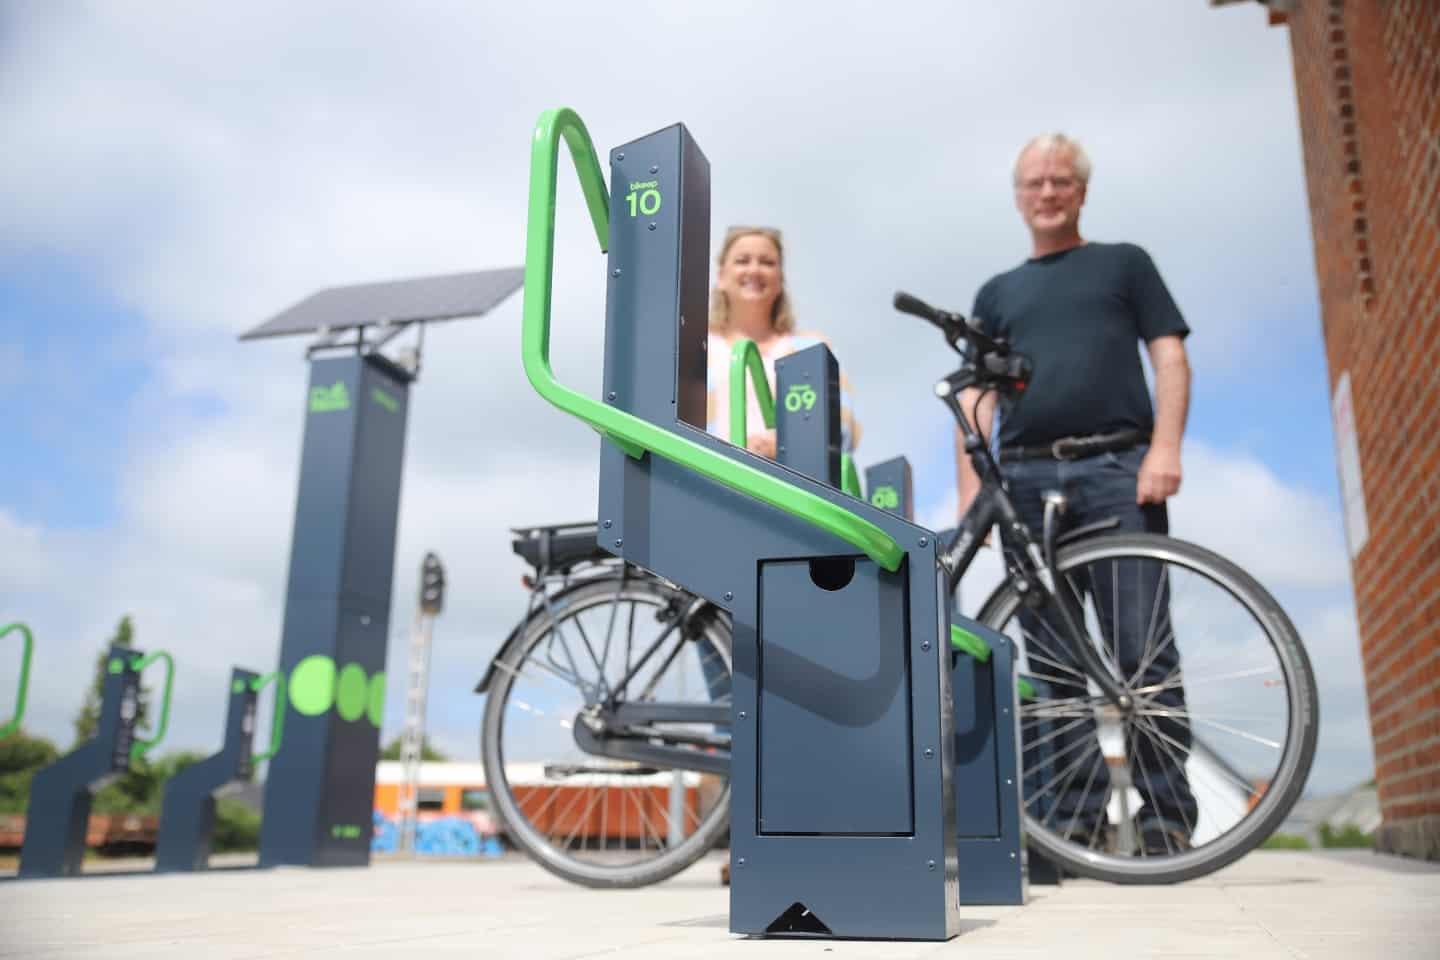 Denmark now offers secure bike parking and charging with solar power